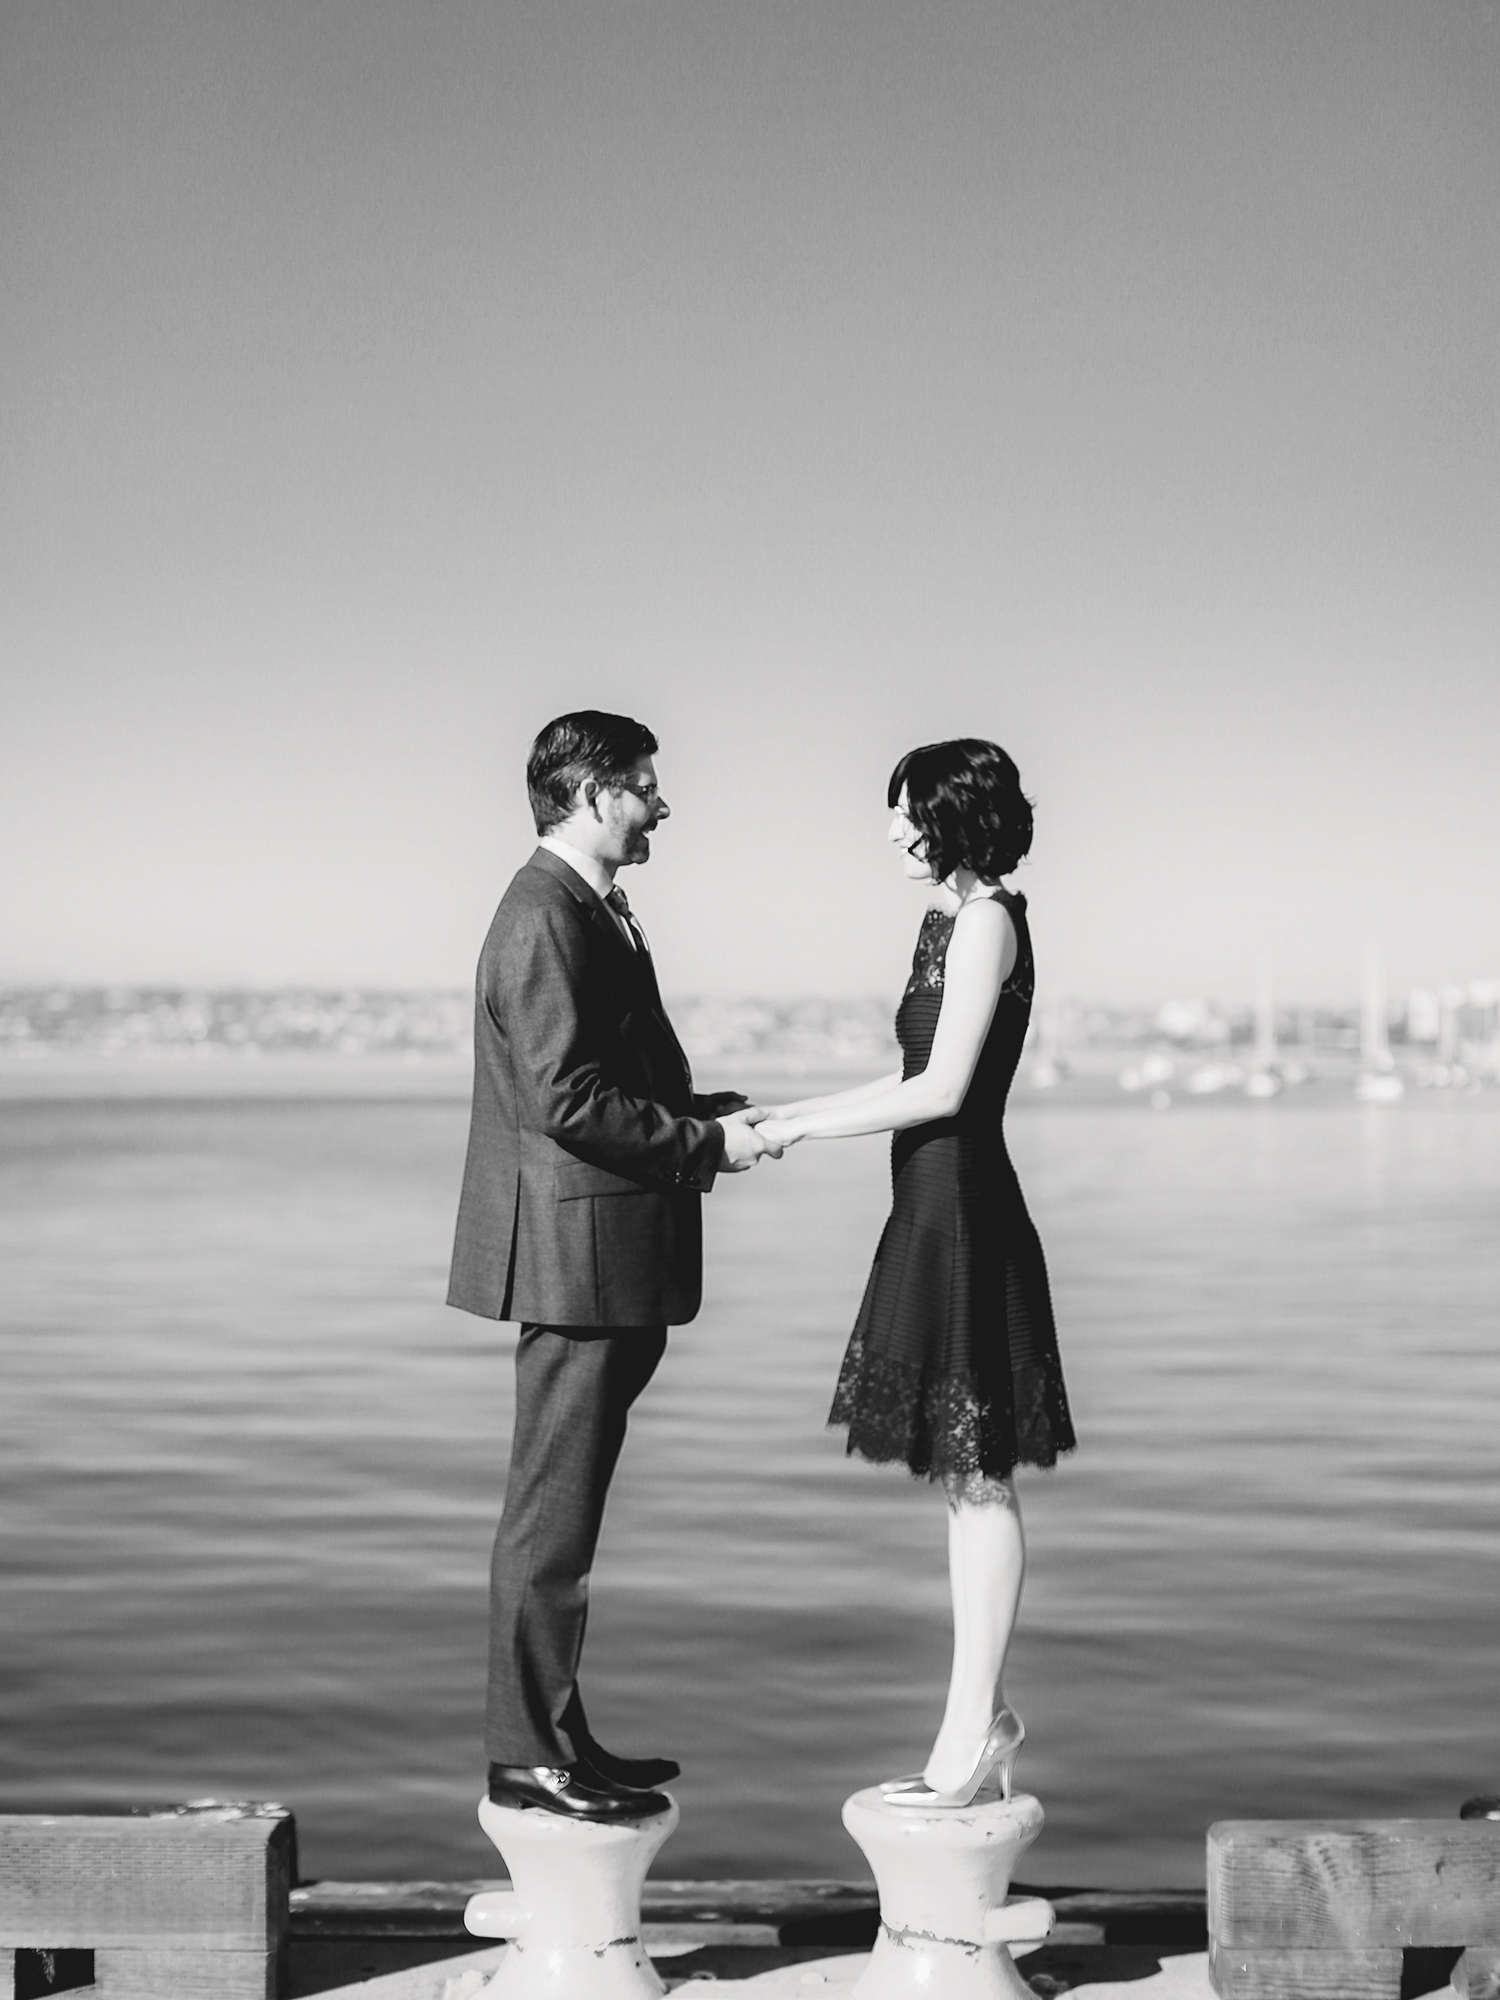 Our Elopement Pictures: 5